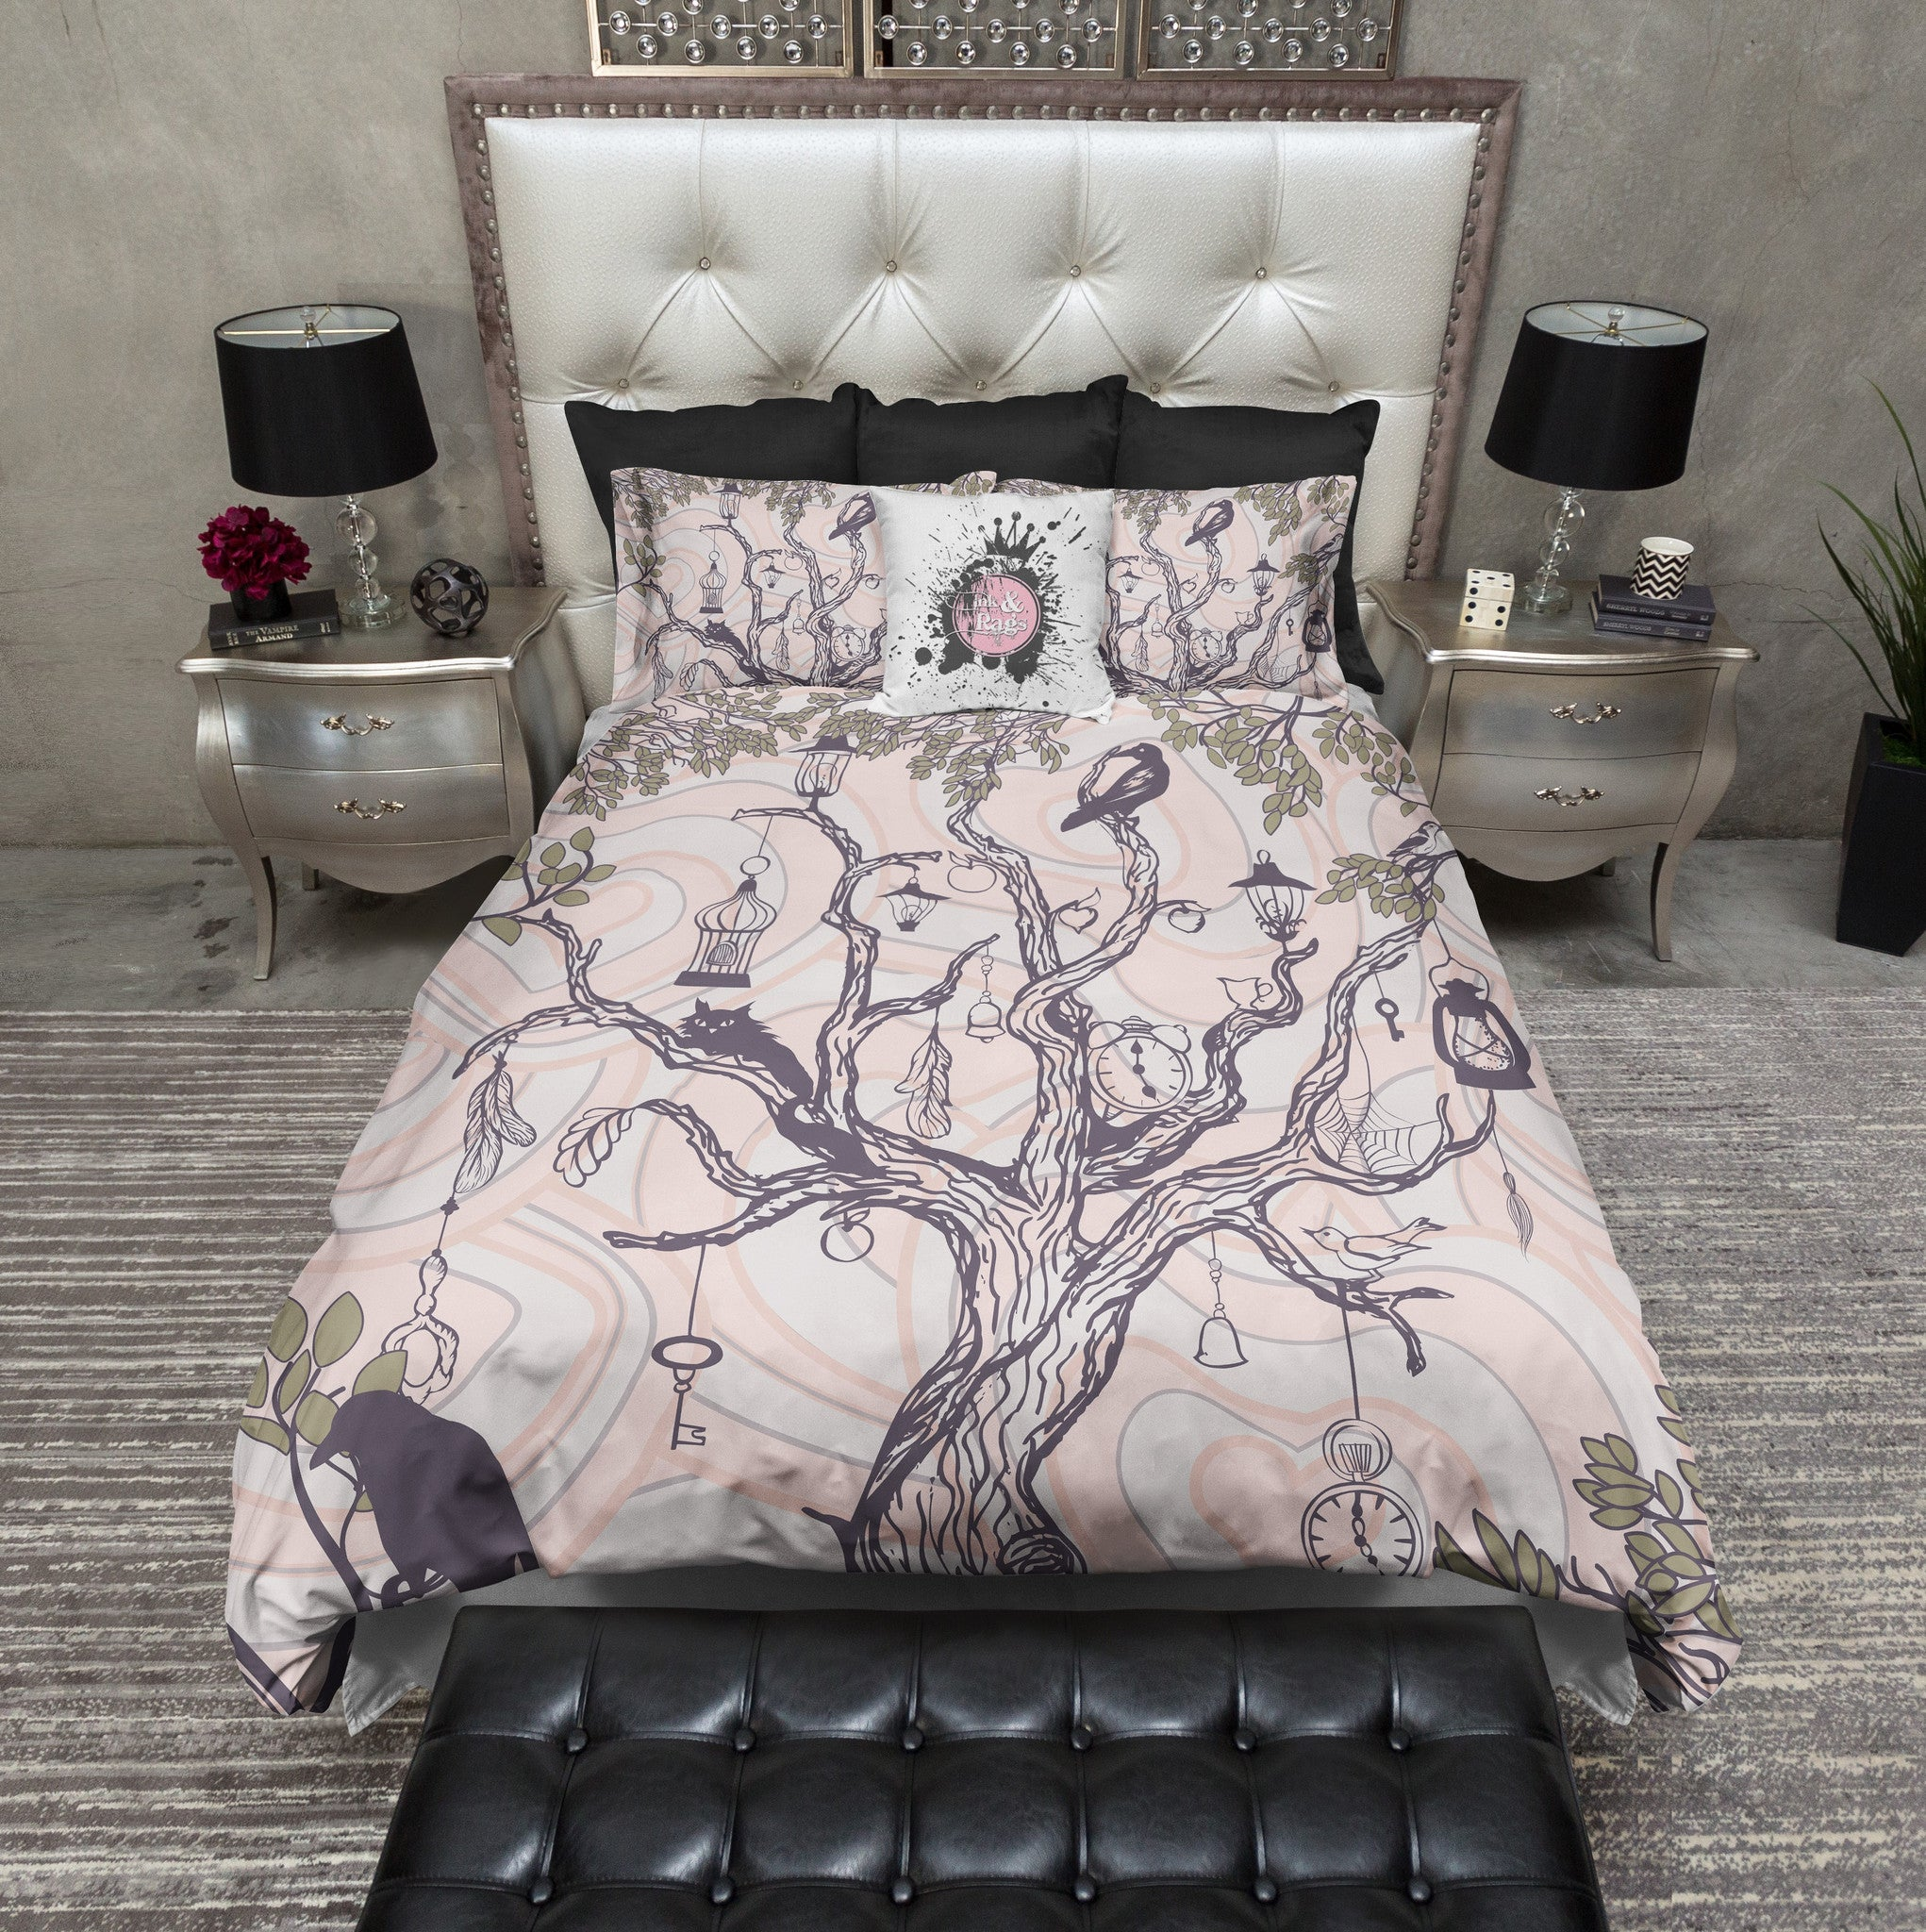 pretty and creepy crows clocks cats and cages duvet bedding  -  pretty and creepy crows clocks cats and cages duvet bedding sets